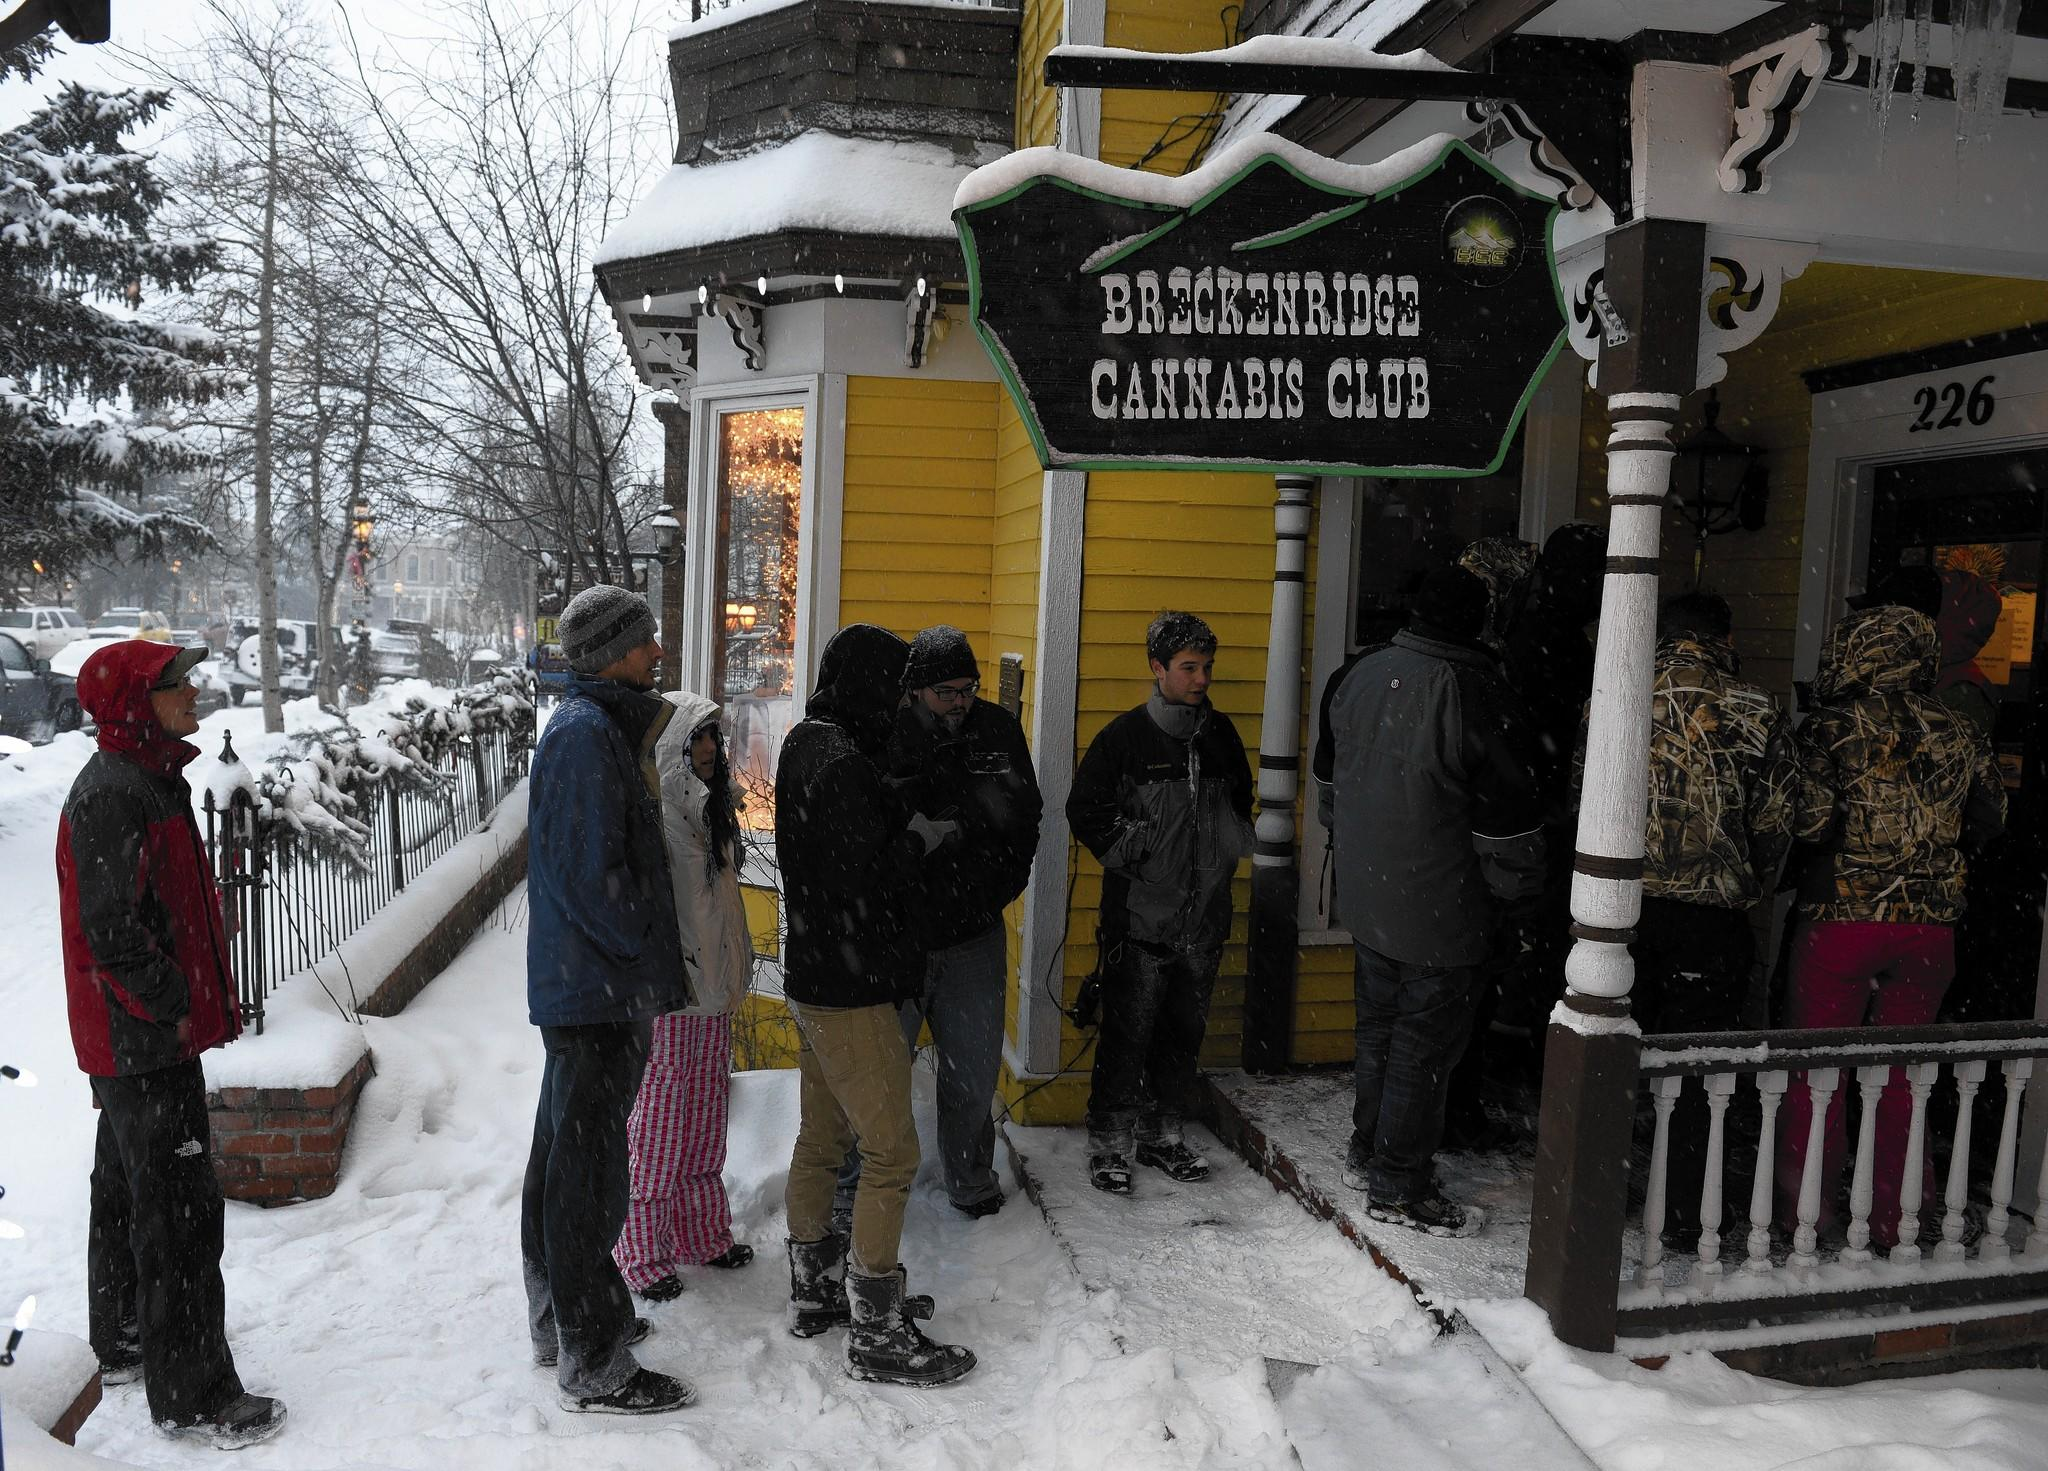 Customers line up outside a cannabis store on the morning of Jan. 1 in Breckenridge, Colo.